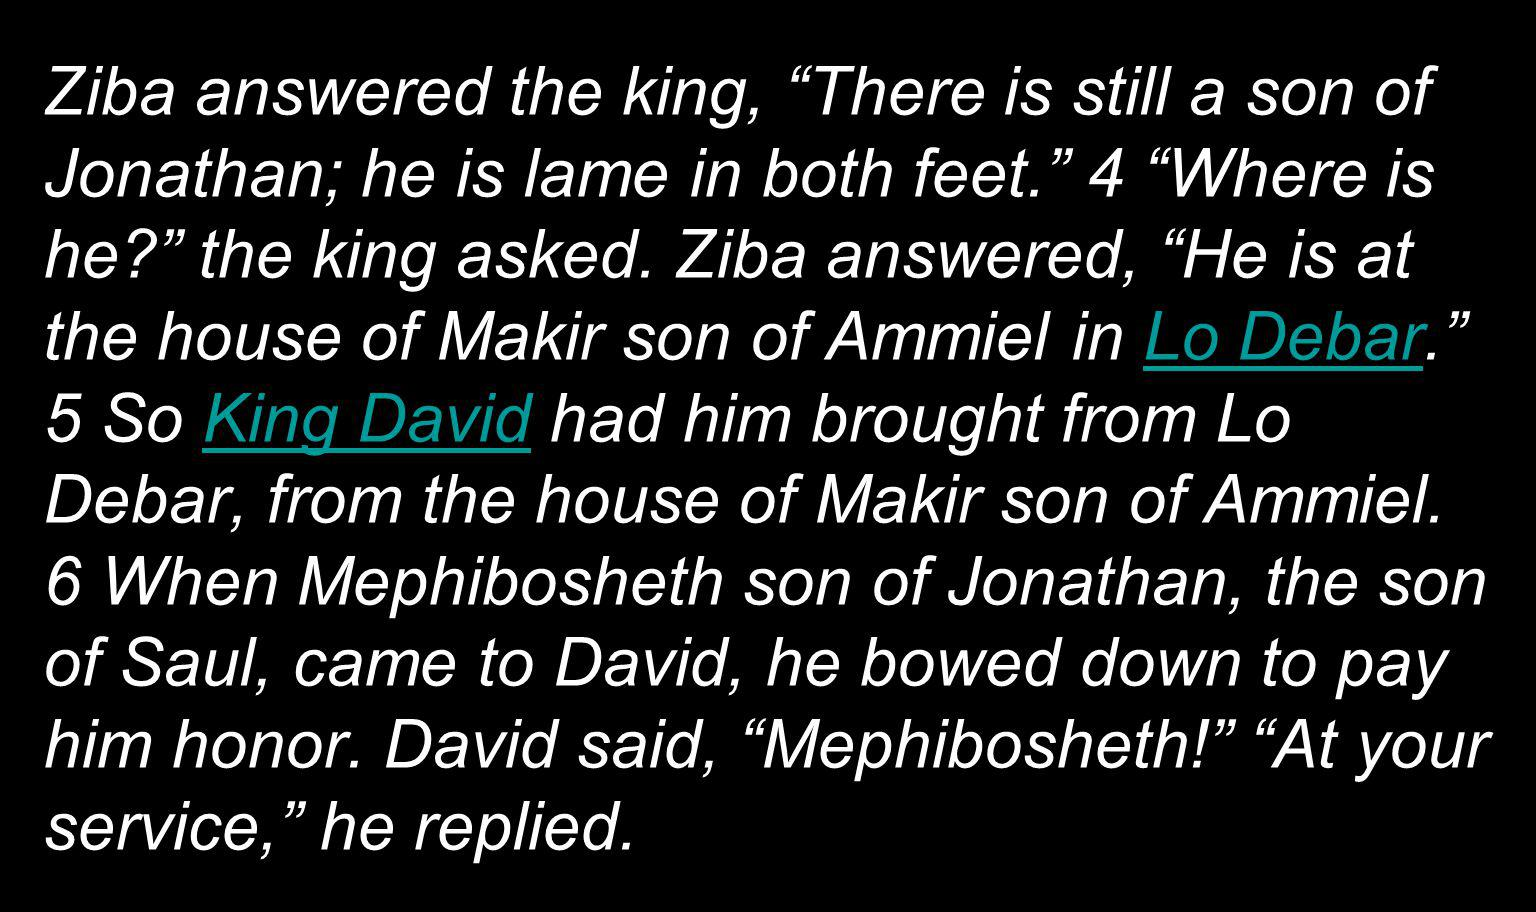 Ziba answered the king, There is still a son of Jonathan; he is lame in both feet. 4 Where is he? the king asked. Ziba answered, He is at the house of